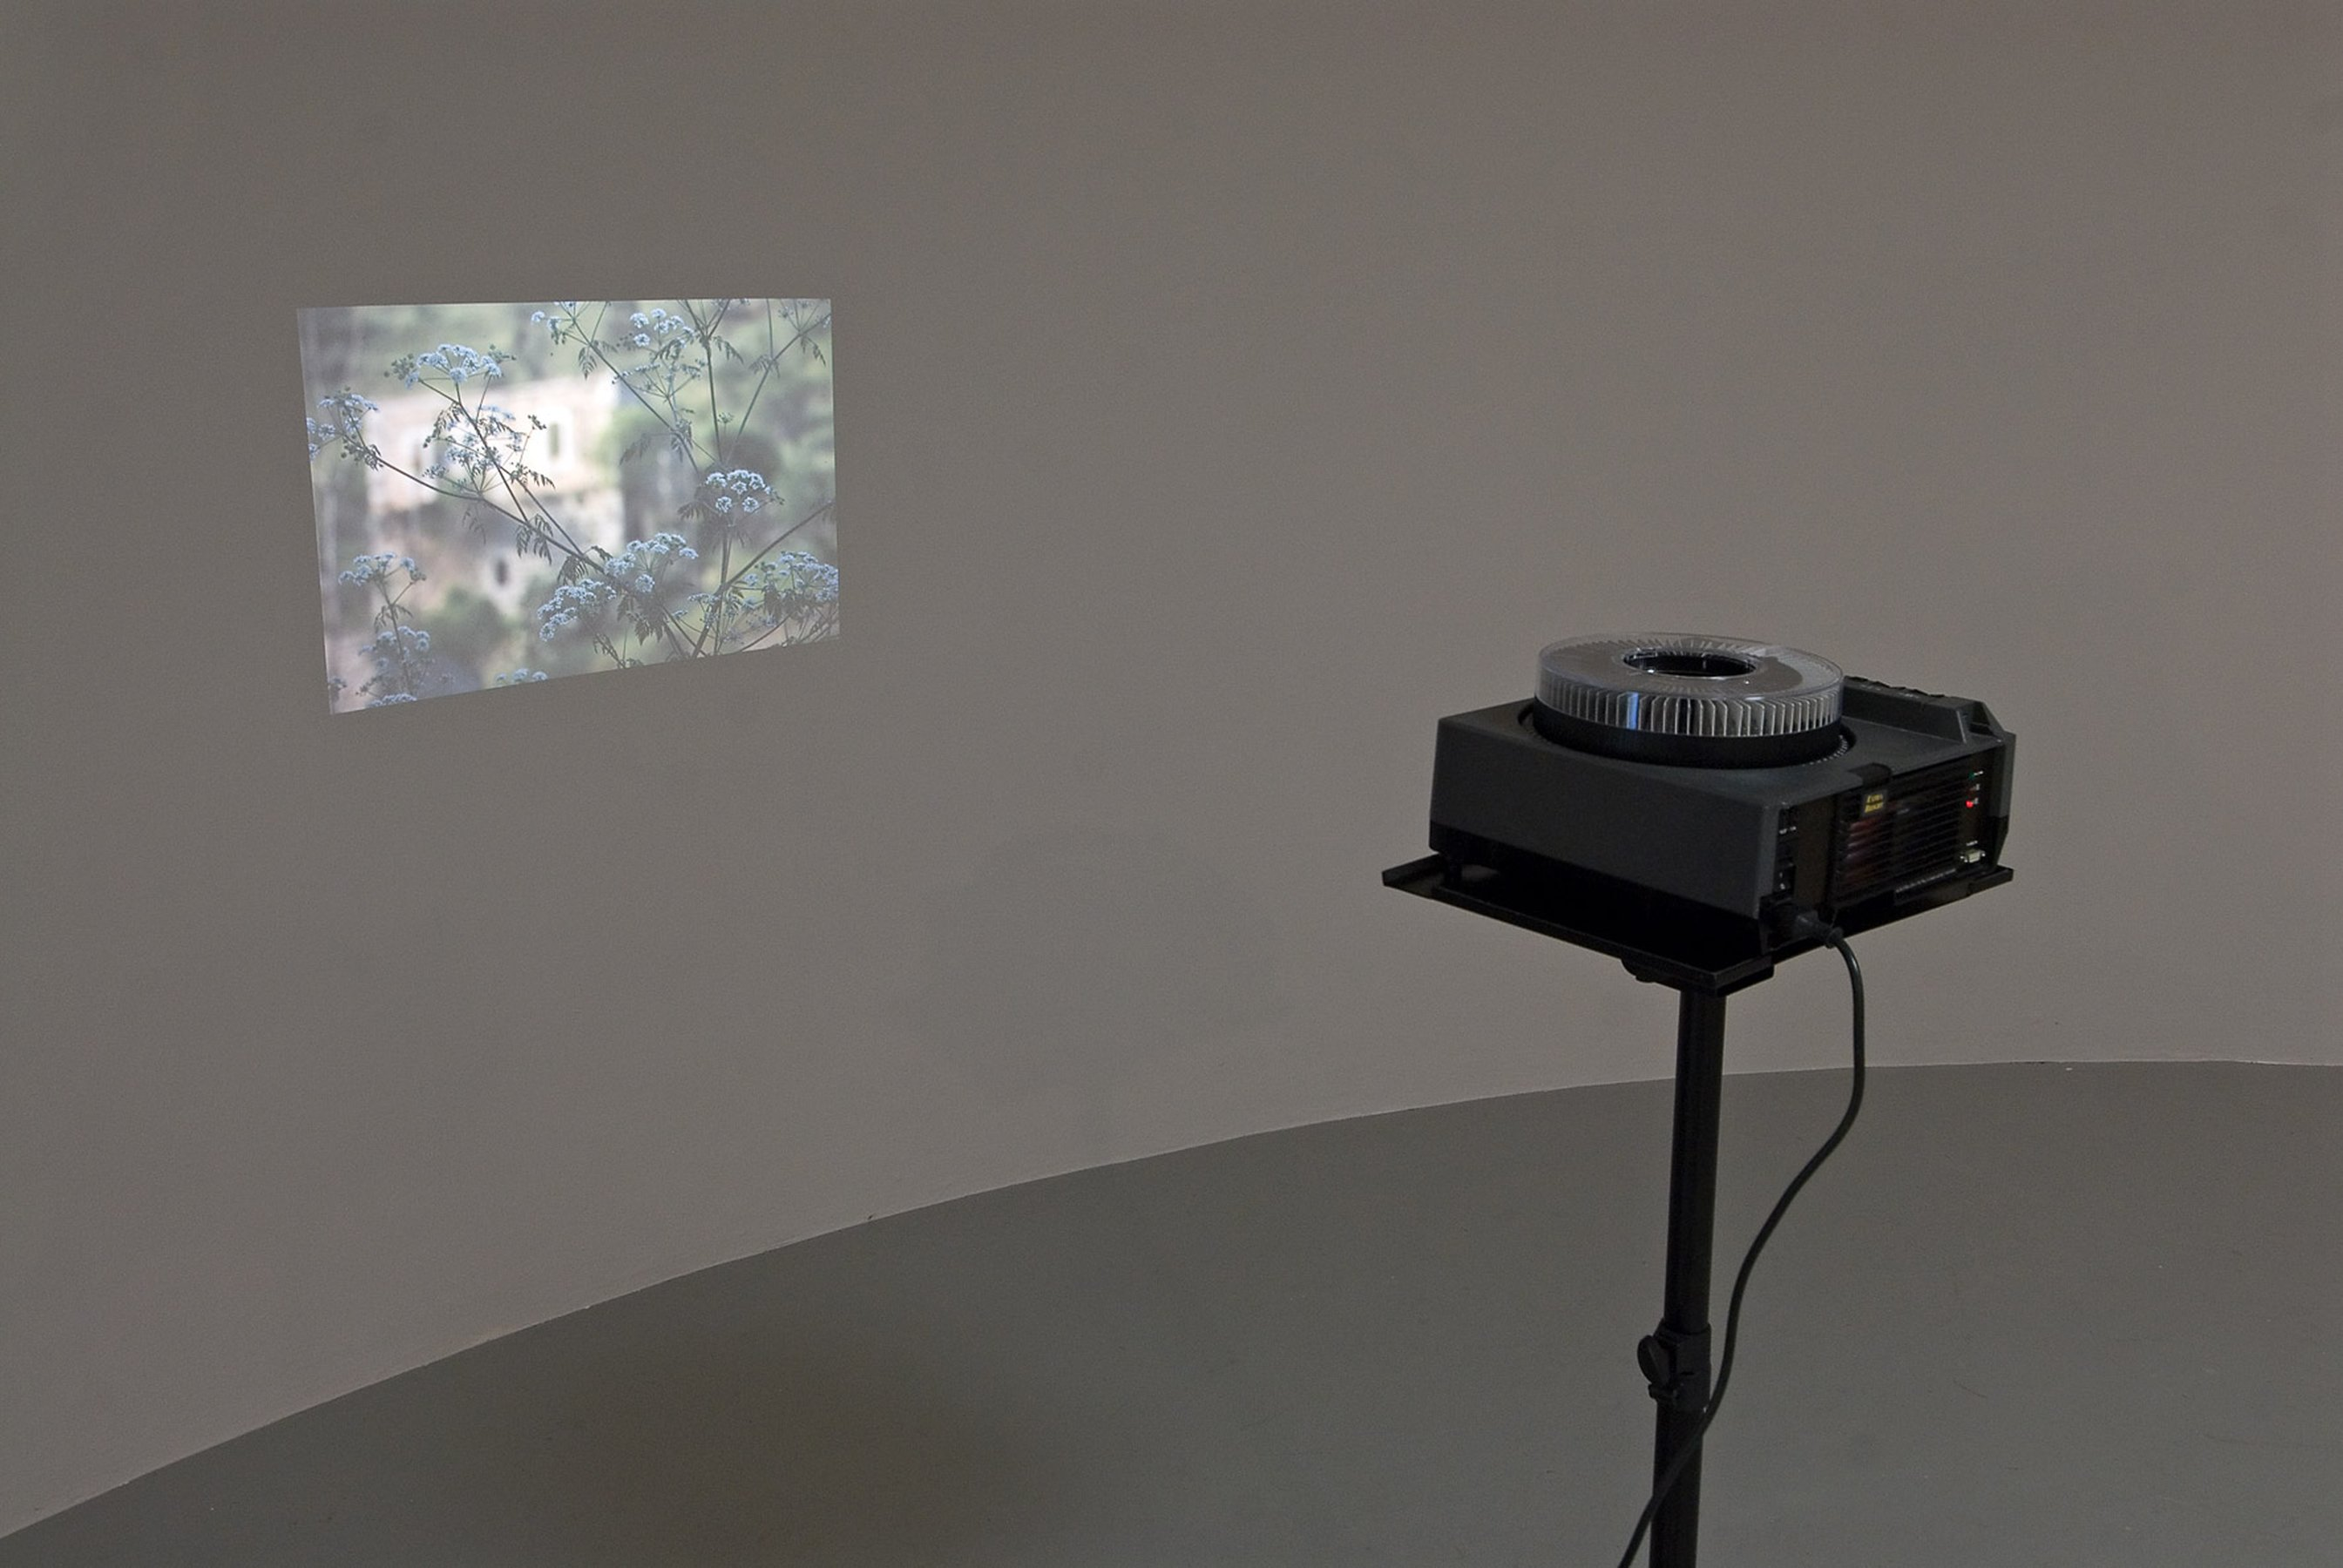 Unmade Film - The Reconnaissance, 2012 - 2013, slide projection